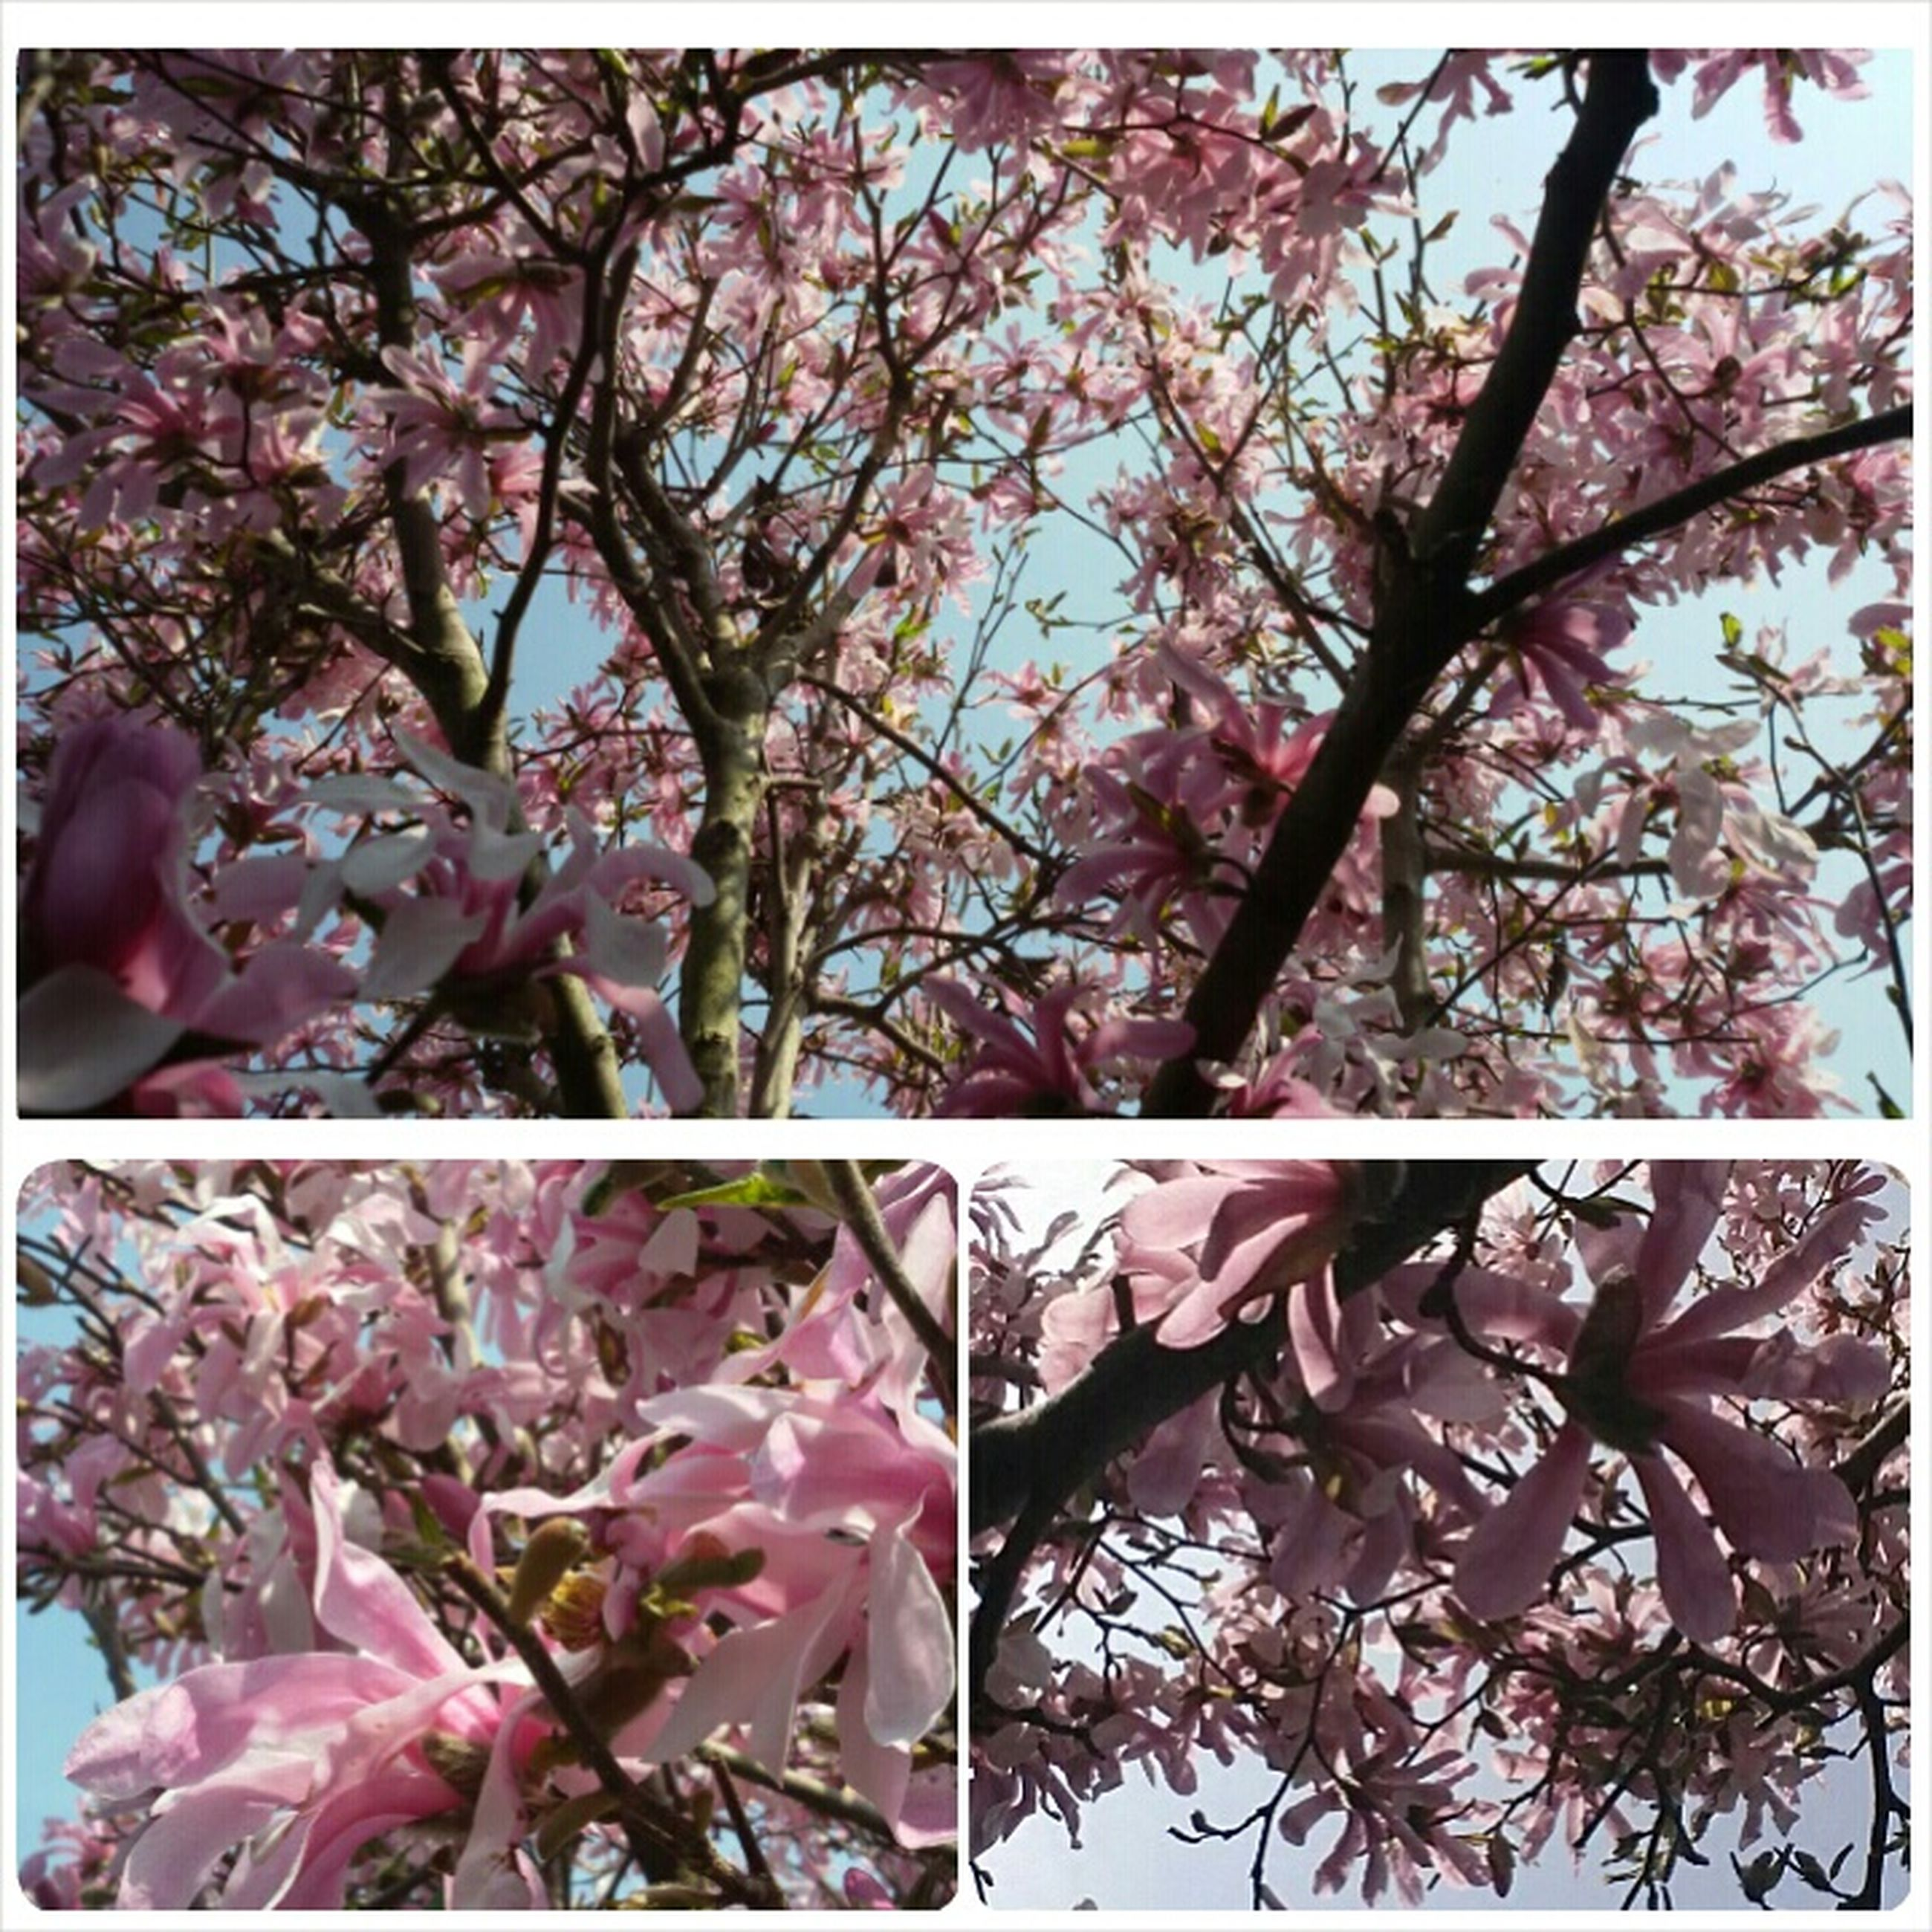 flower, branch, tree, low angle view, growth, freshness, pink color, fragility, blossom, beauty in nature, cherry blossom, nature, transfer print, auto post production filter, pink, cherry tree, in bloom, springtime, petal, blooming